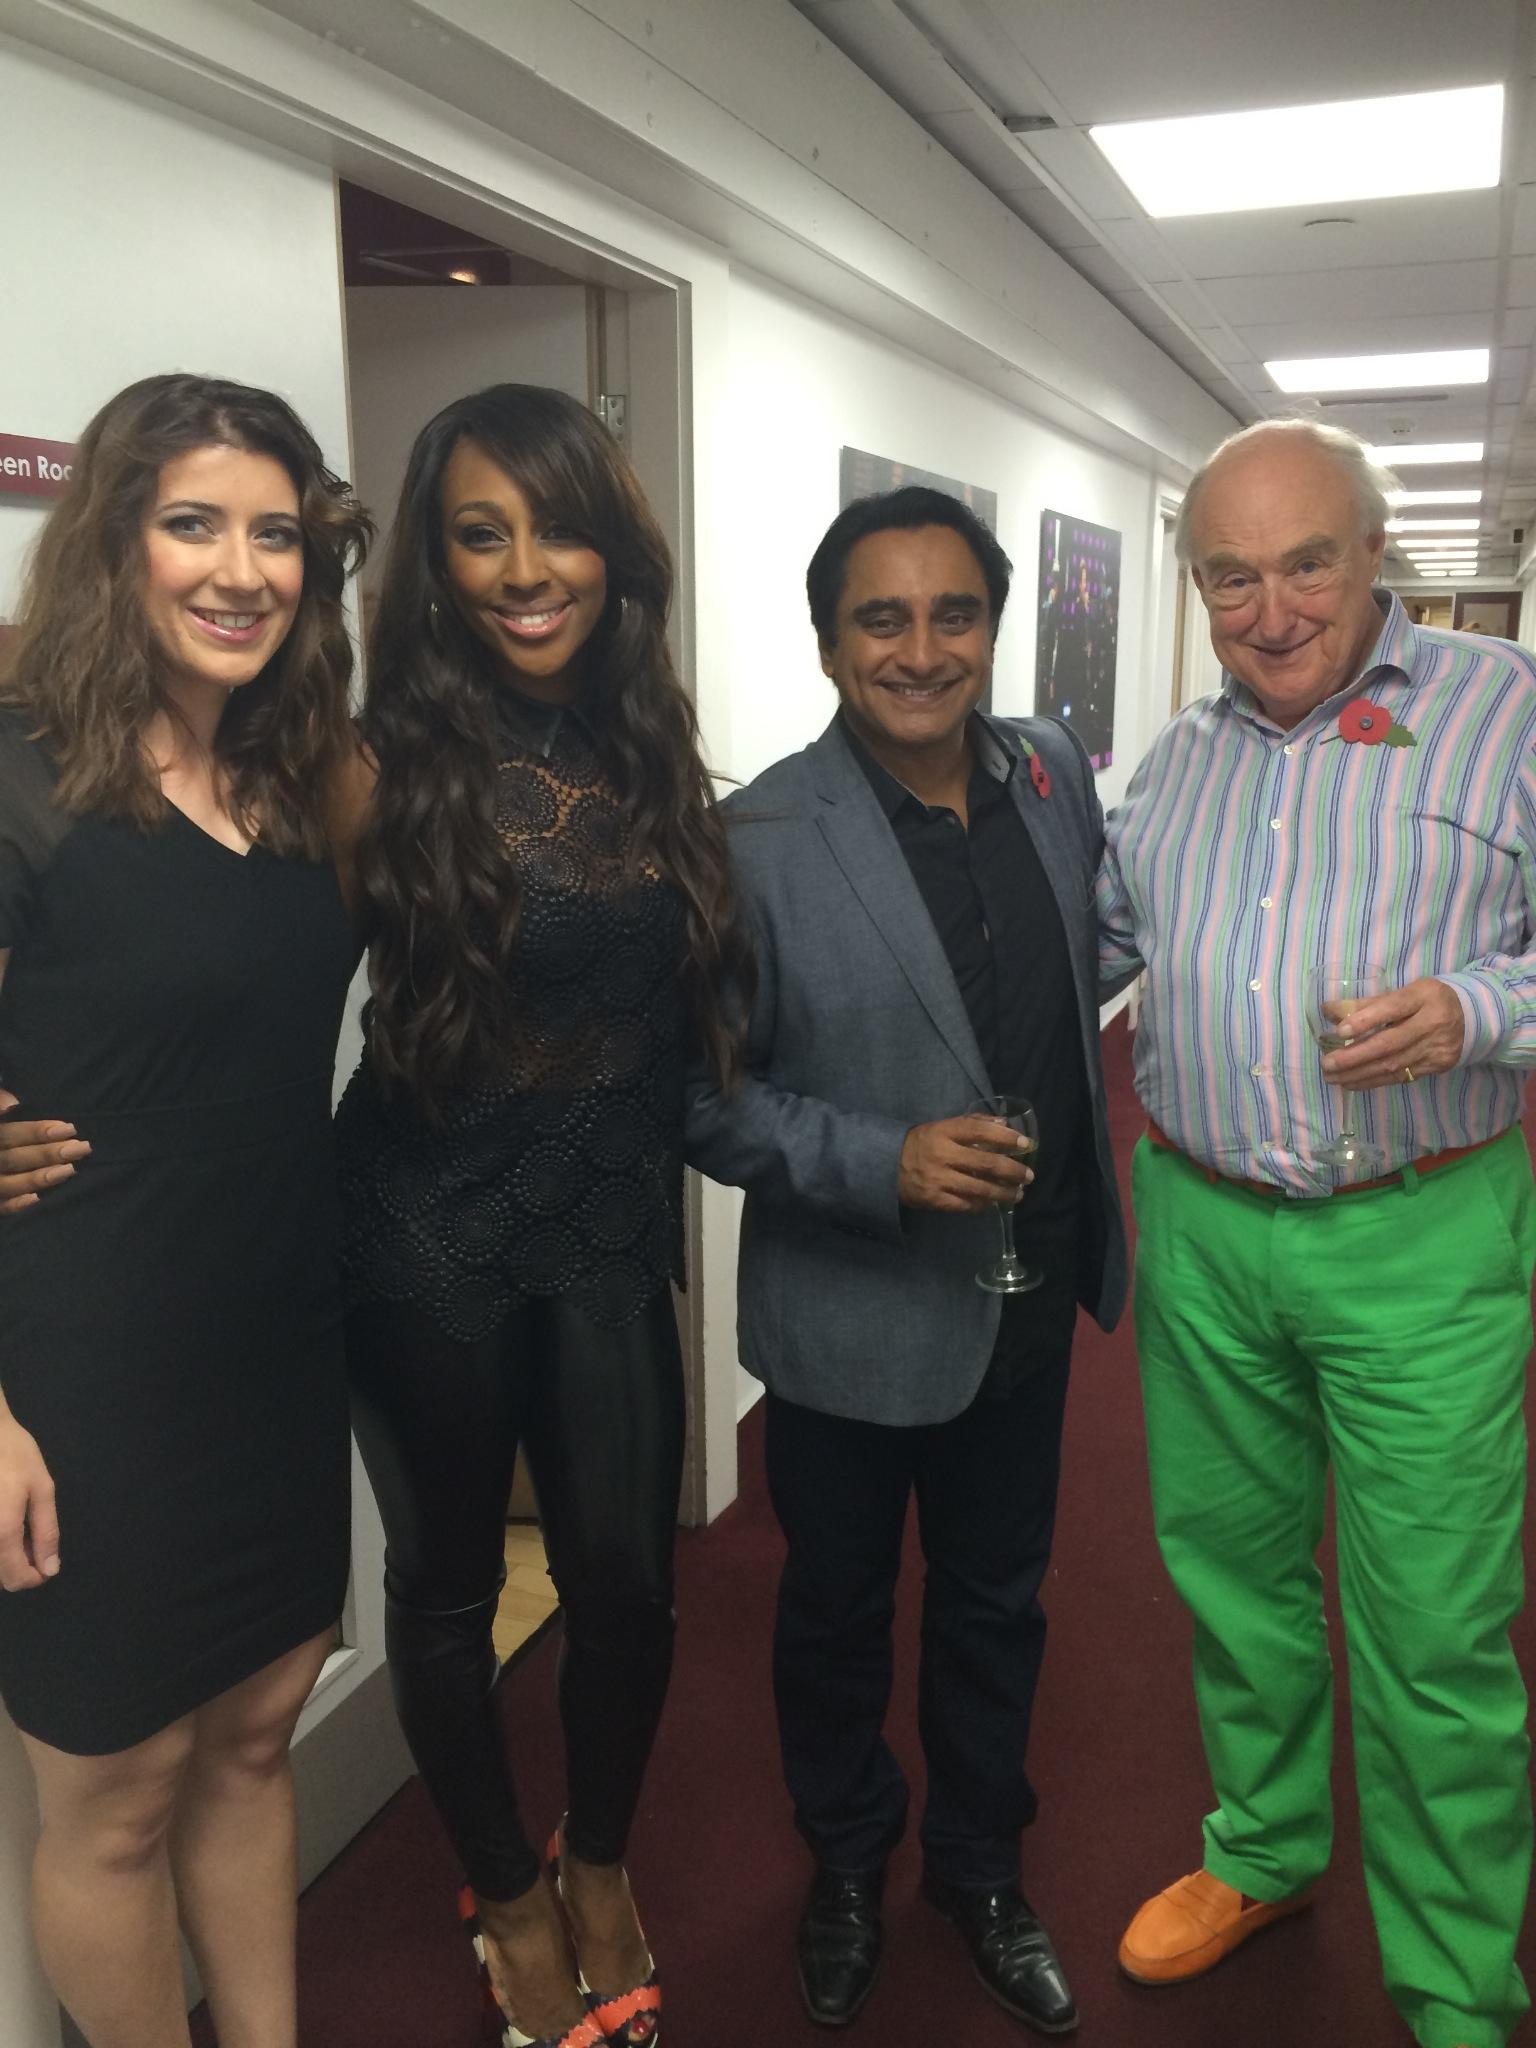 RT @blowersh: Had a wonderful time filming @ITVChase with @alexandramusic @TVSanjeev @LibbyClegg http://t.co/jVxXey9N3R